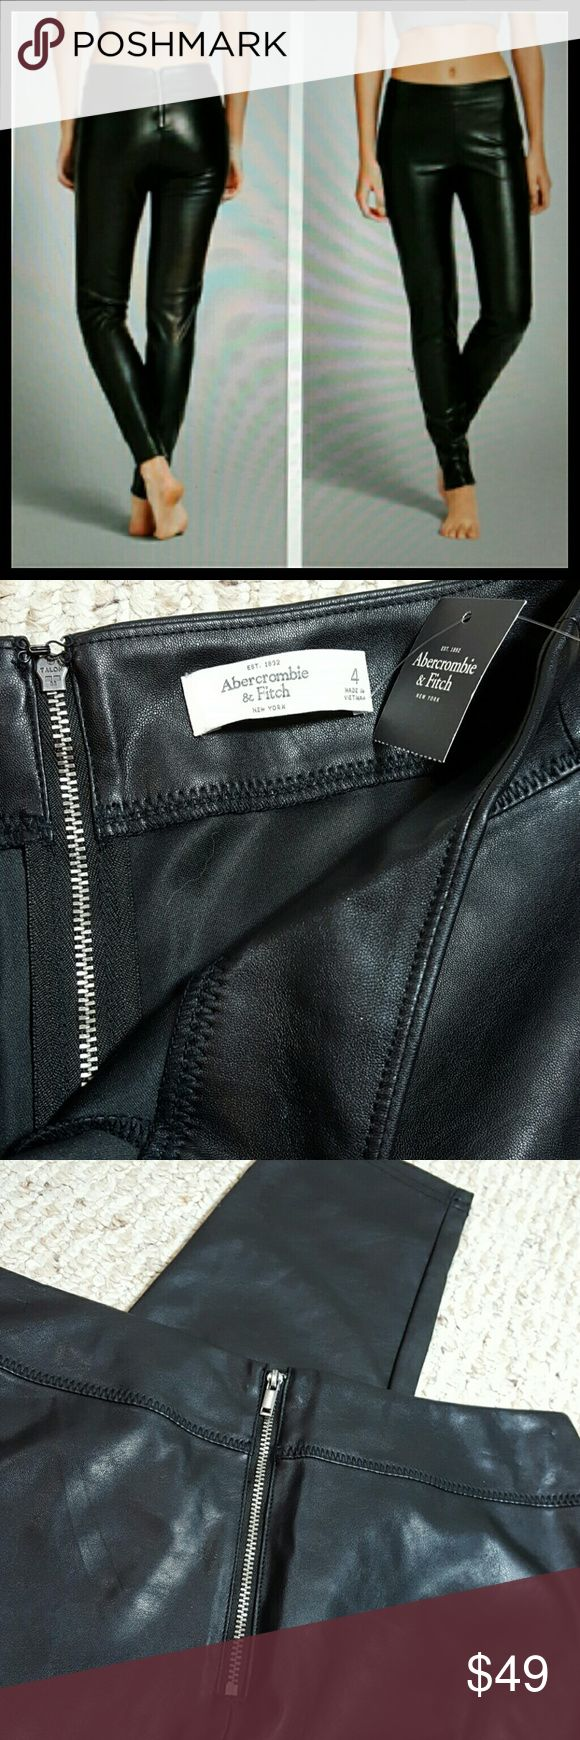 "New Abercrombie and Fitch Faux Leather Pants New with tags  Faux leather pants/leggings,  with back zip n hook closure. 100% Polyester  Approximately  29.5"" inseam  10"" Rise  13.5"" waist  5"" leg opening  ??No trades Please ??NO modeling  Due to frequent low ball offers, I will be blocking those who do. My apologies. Abercrombie & Fitch Pants"